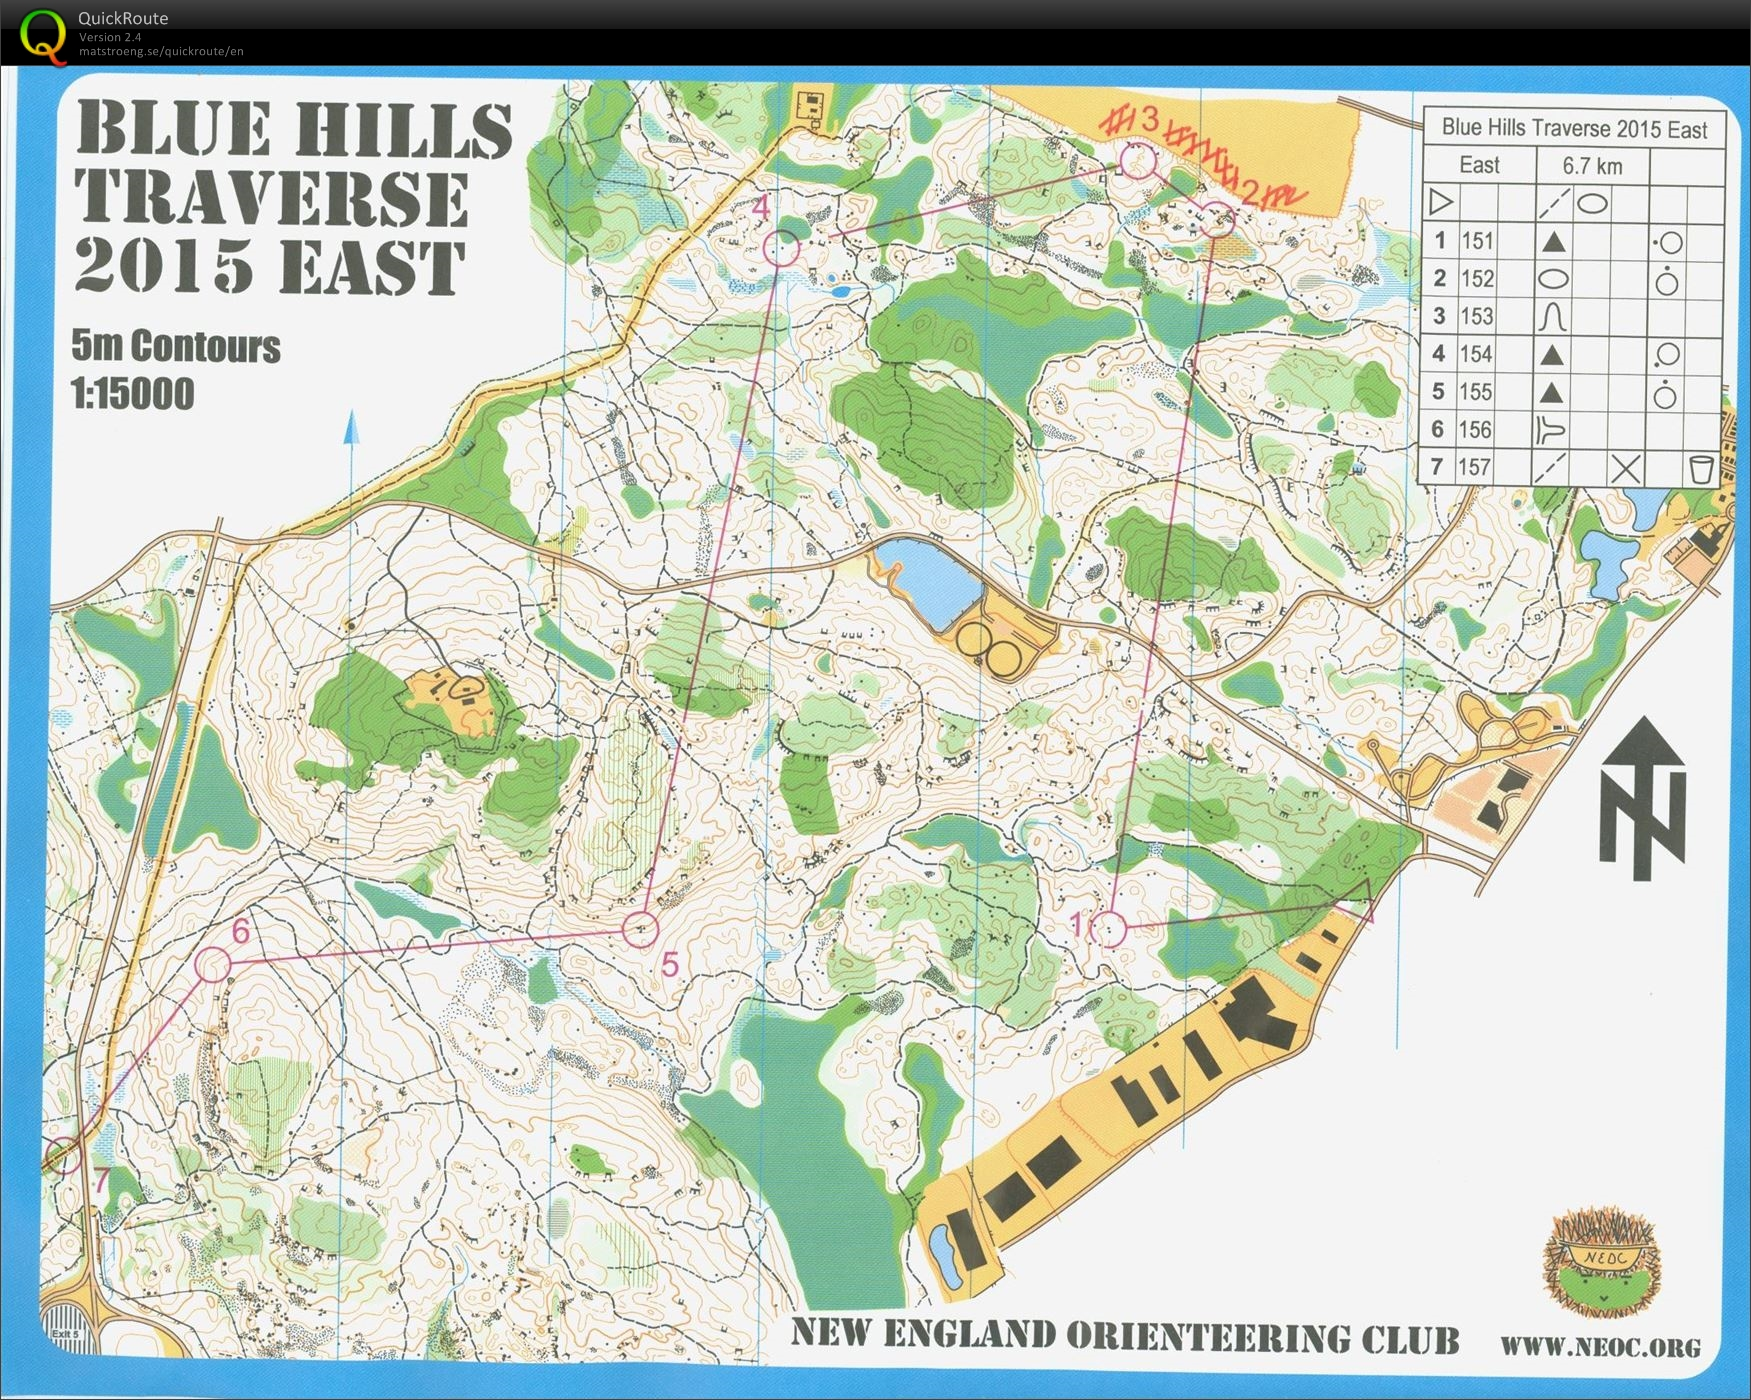 Blue Hills Traverse - East (22/11/2015)